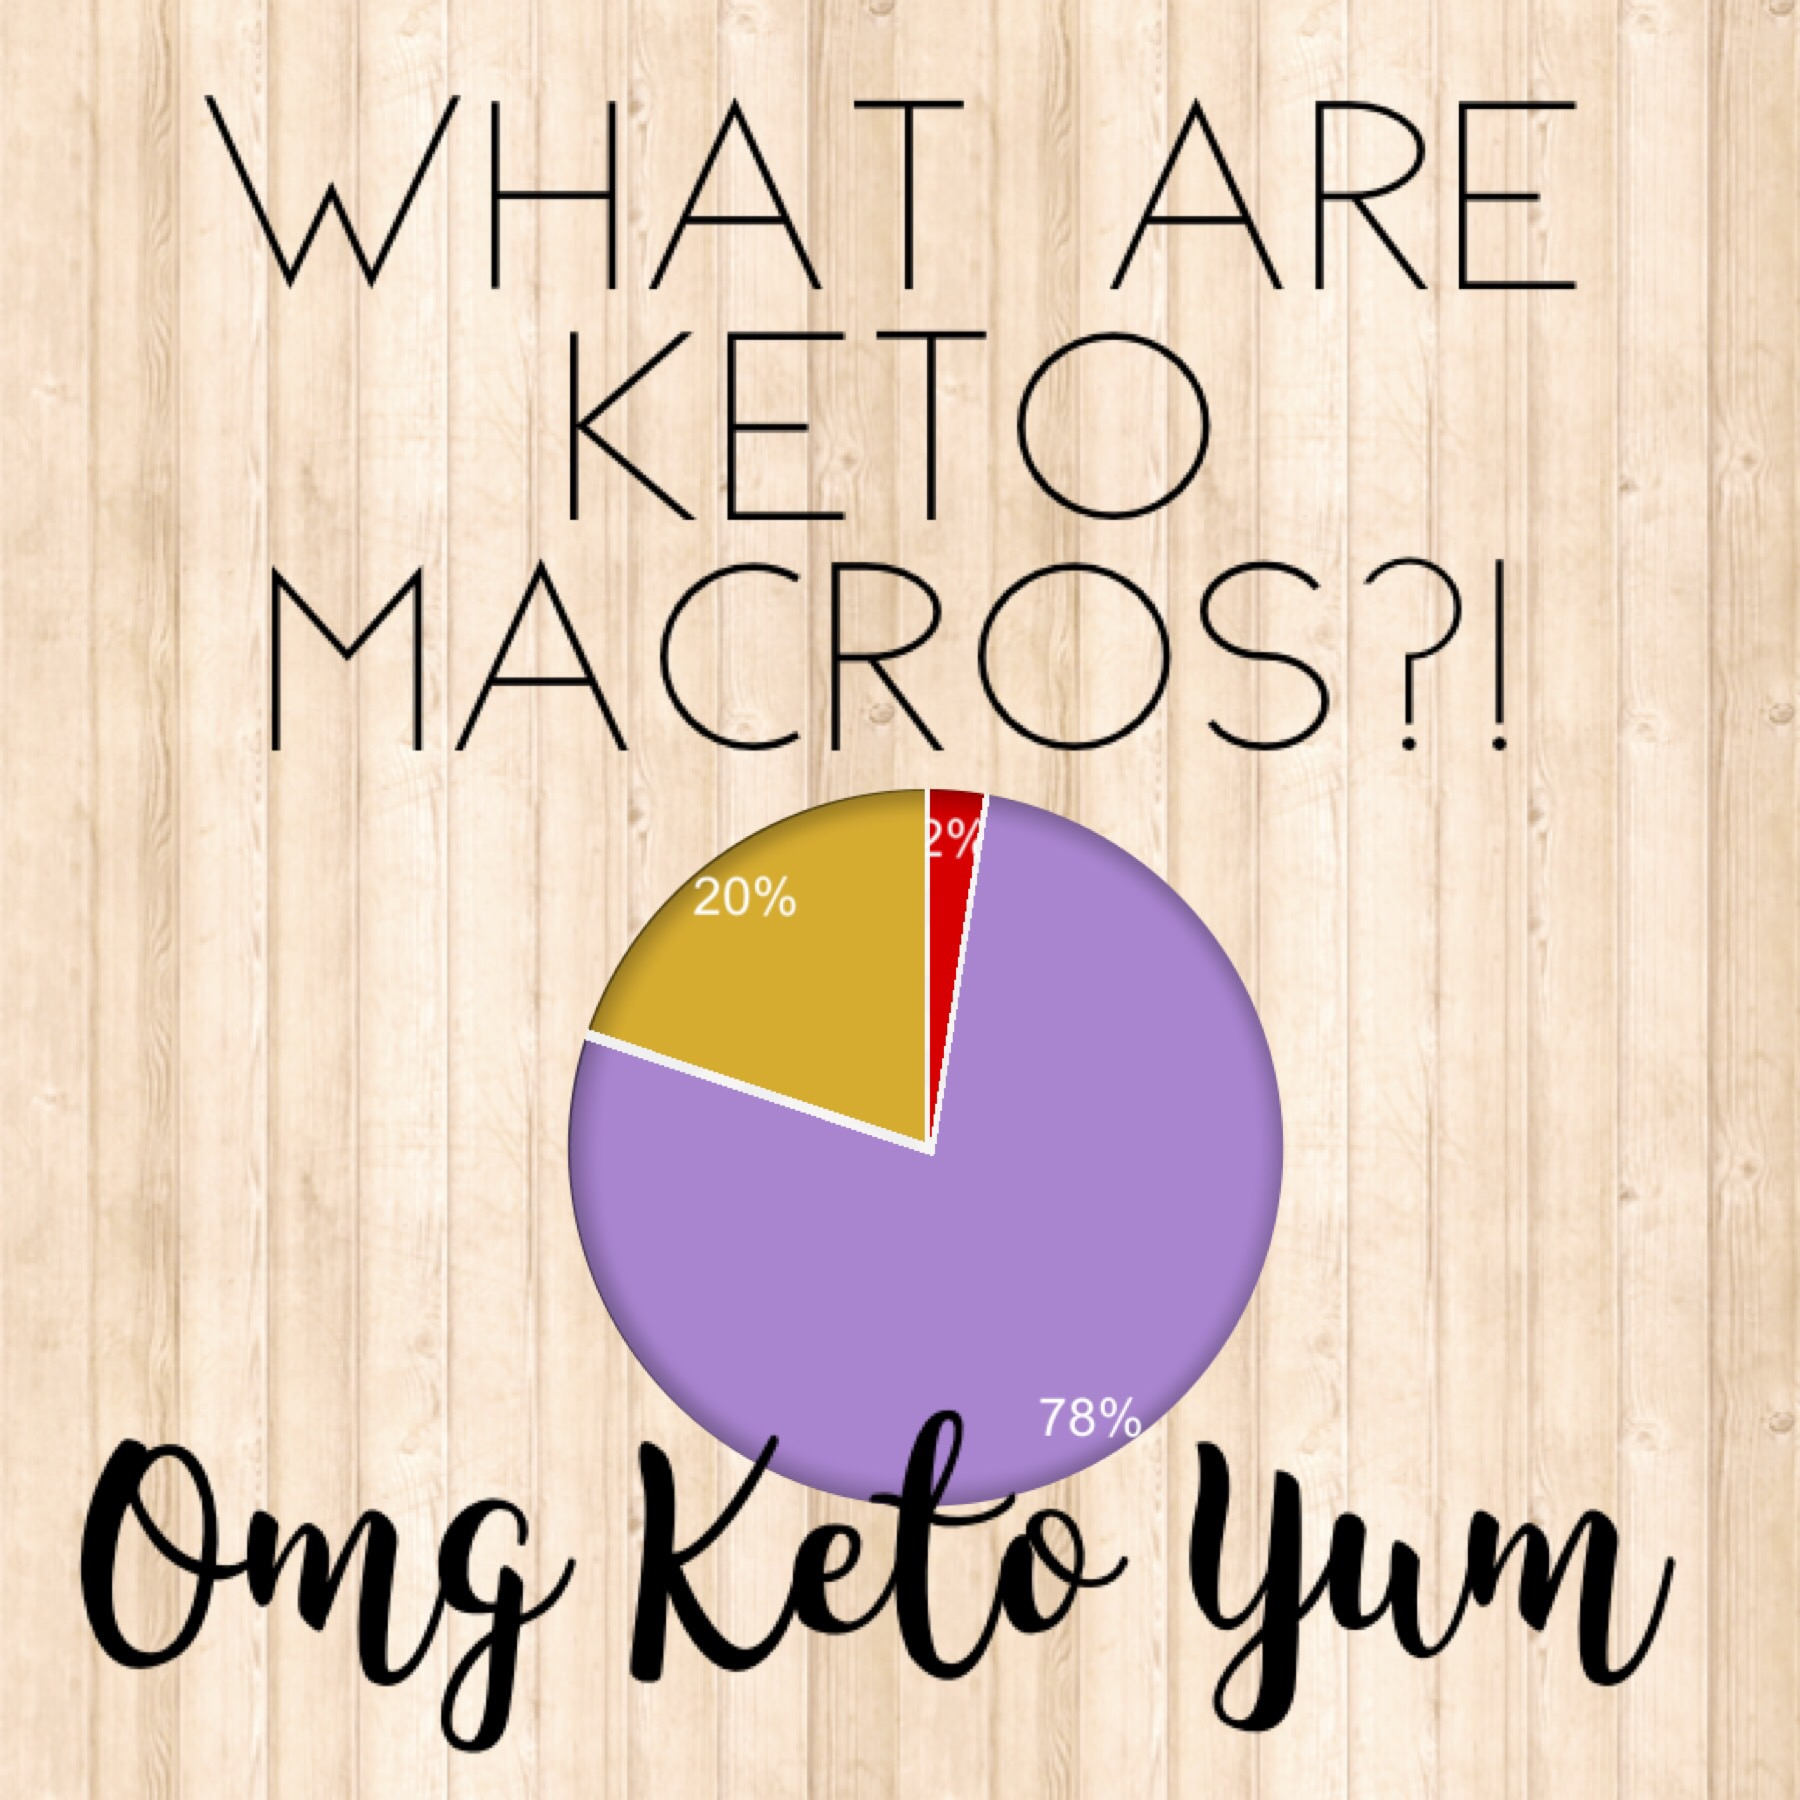 how to eat a keto diet